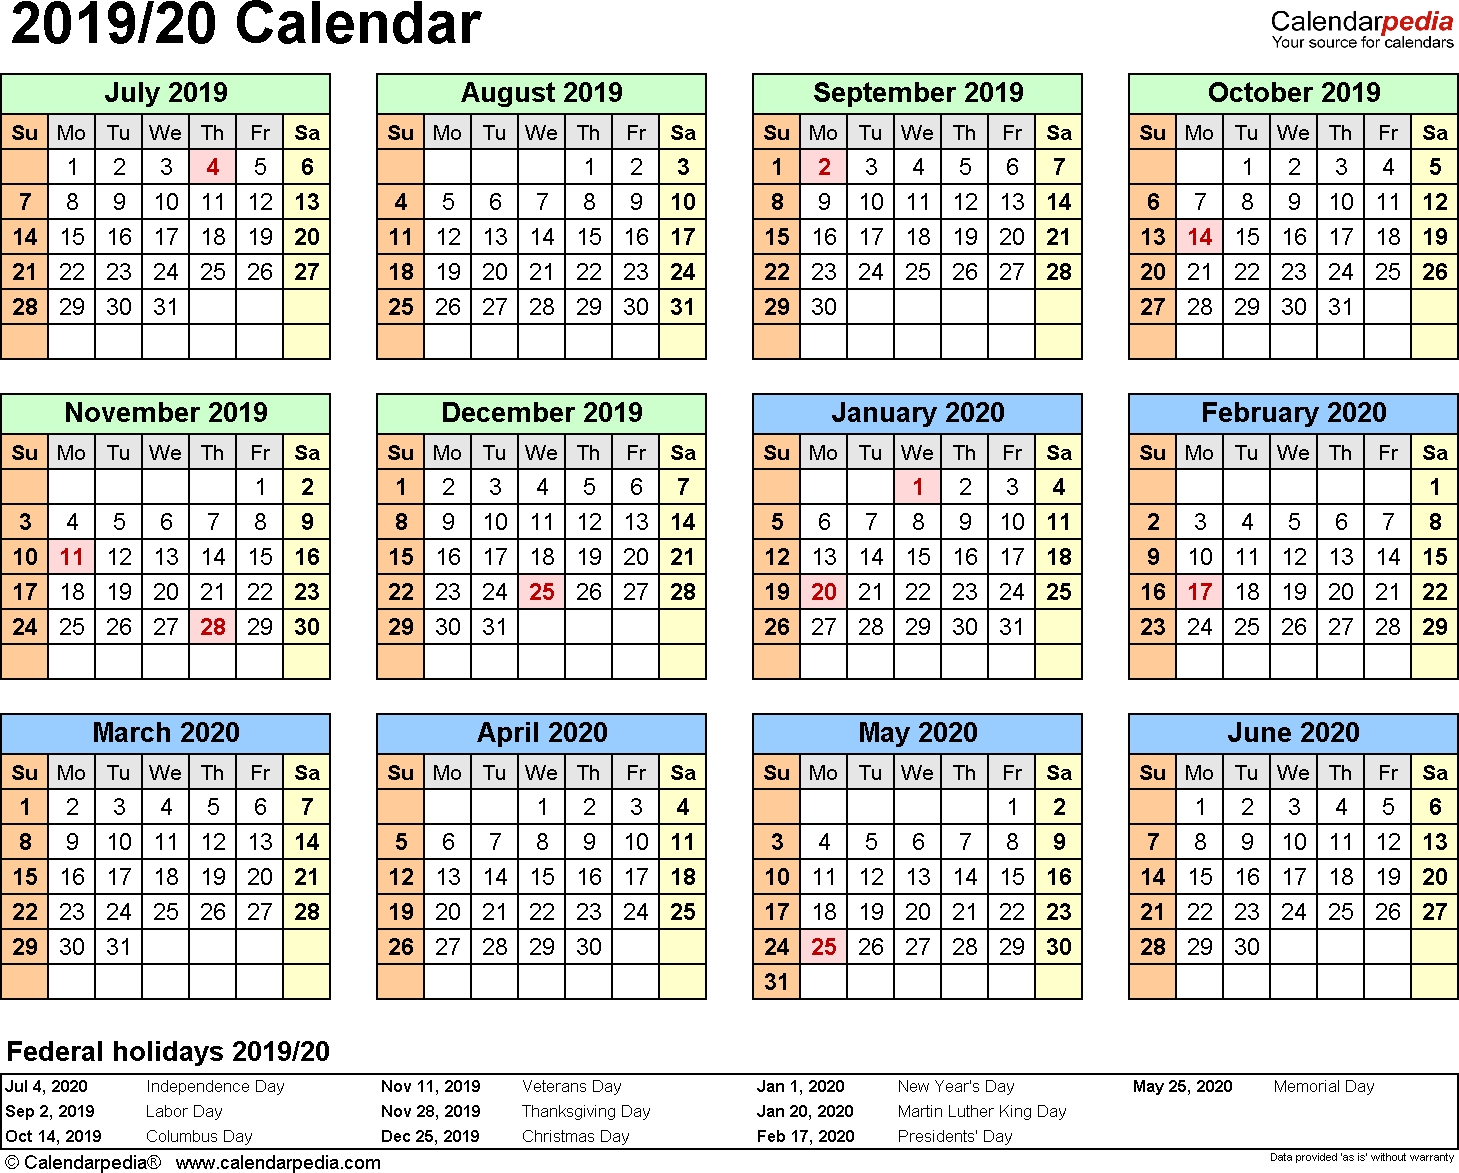 Split Year Calendar 2019/20 (July To June) - Pdf Templates with regard to Printable Calendar July 2019 To June 2020